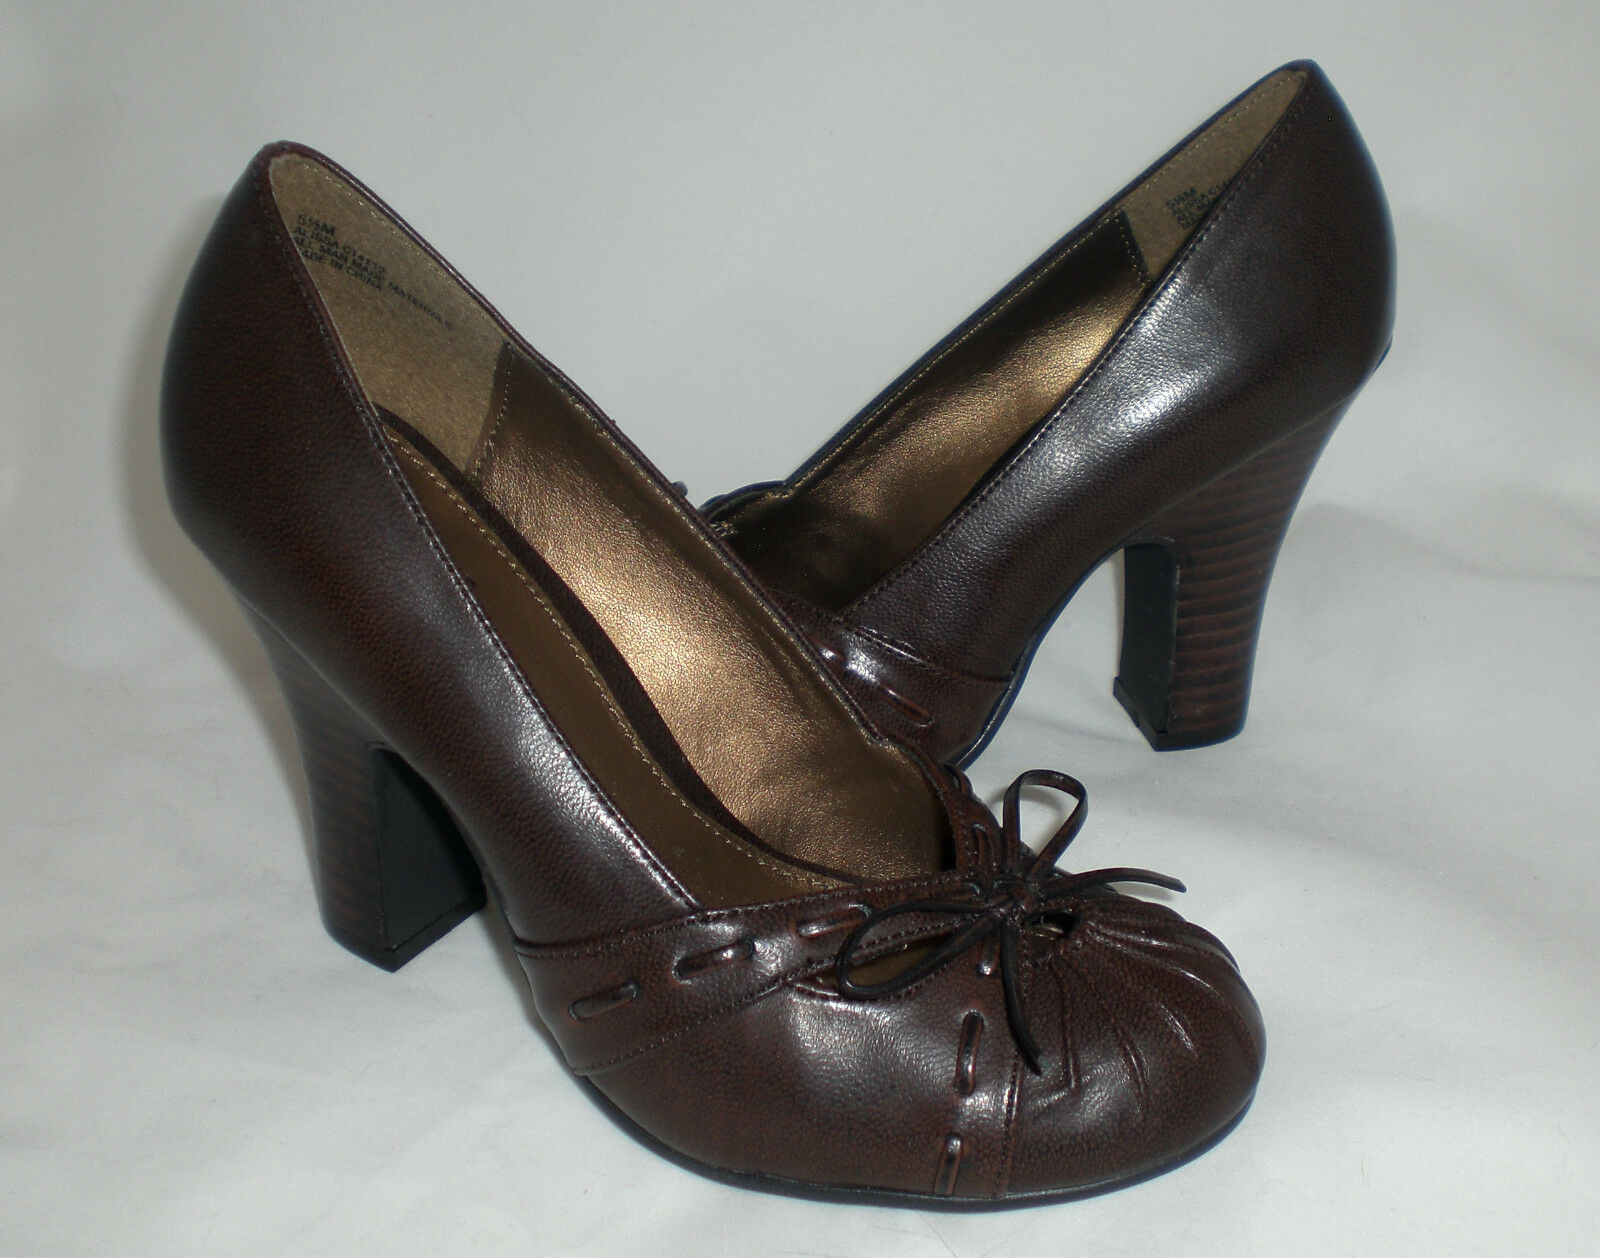 Mia Alissa pumps brown detailed 3.75  heels sz 9 Md NEW